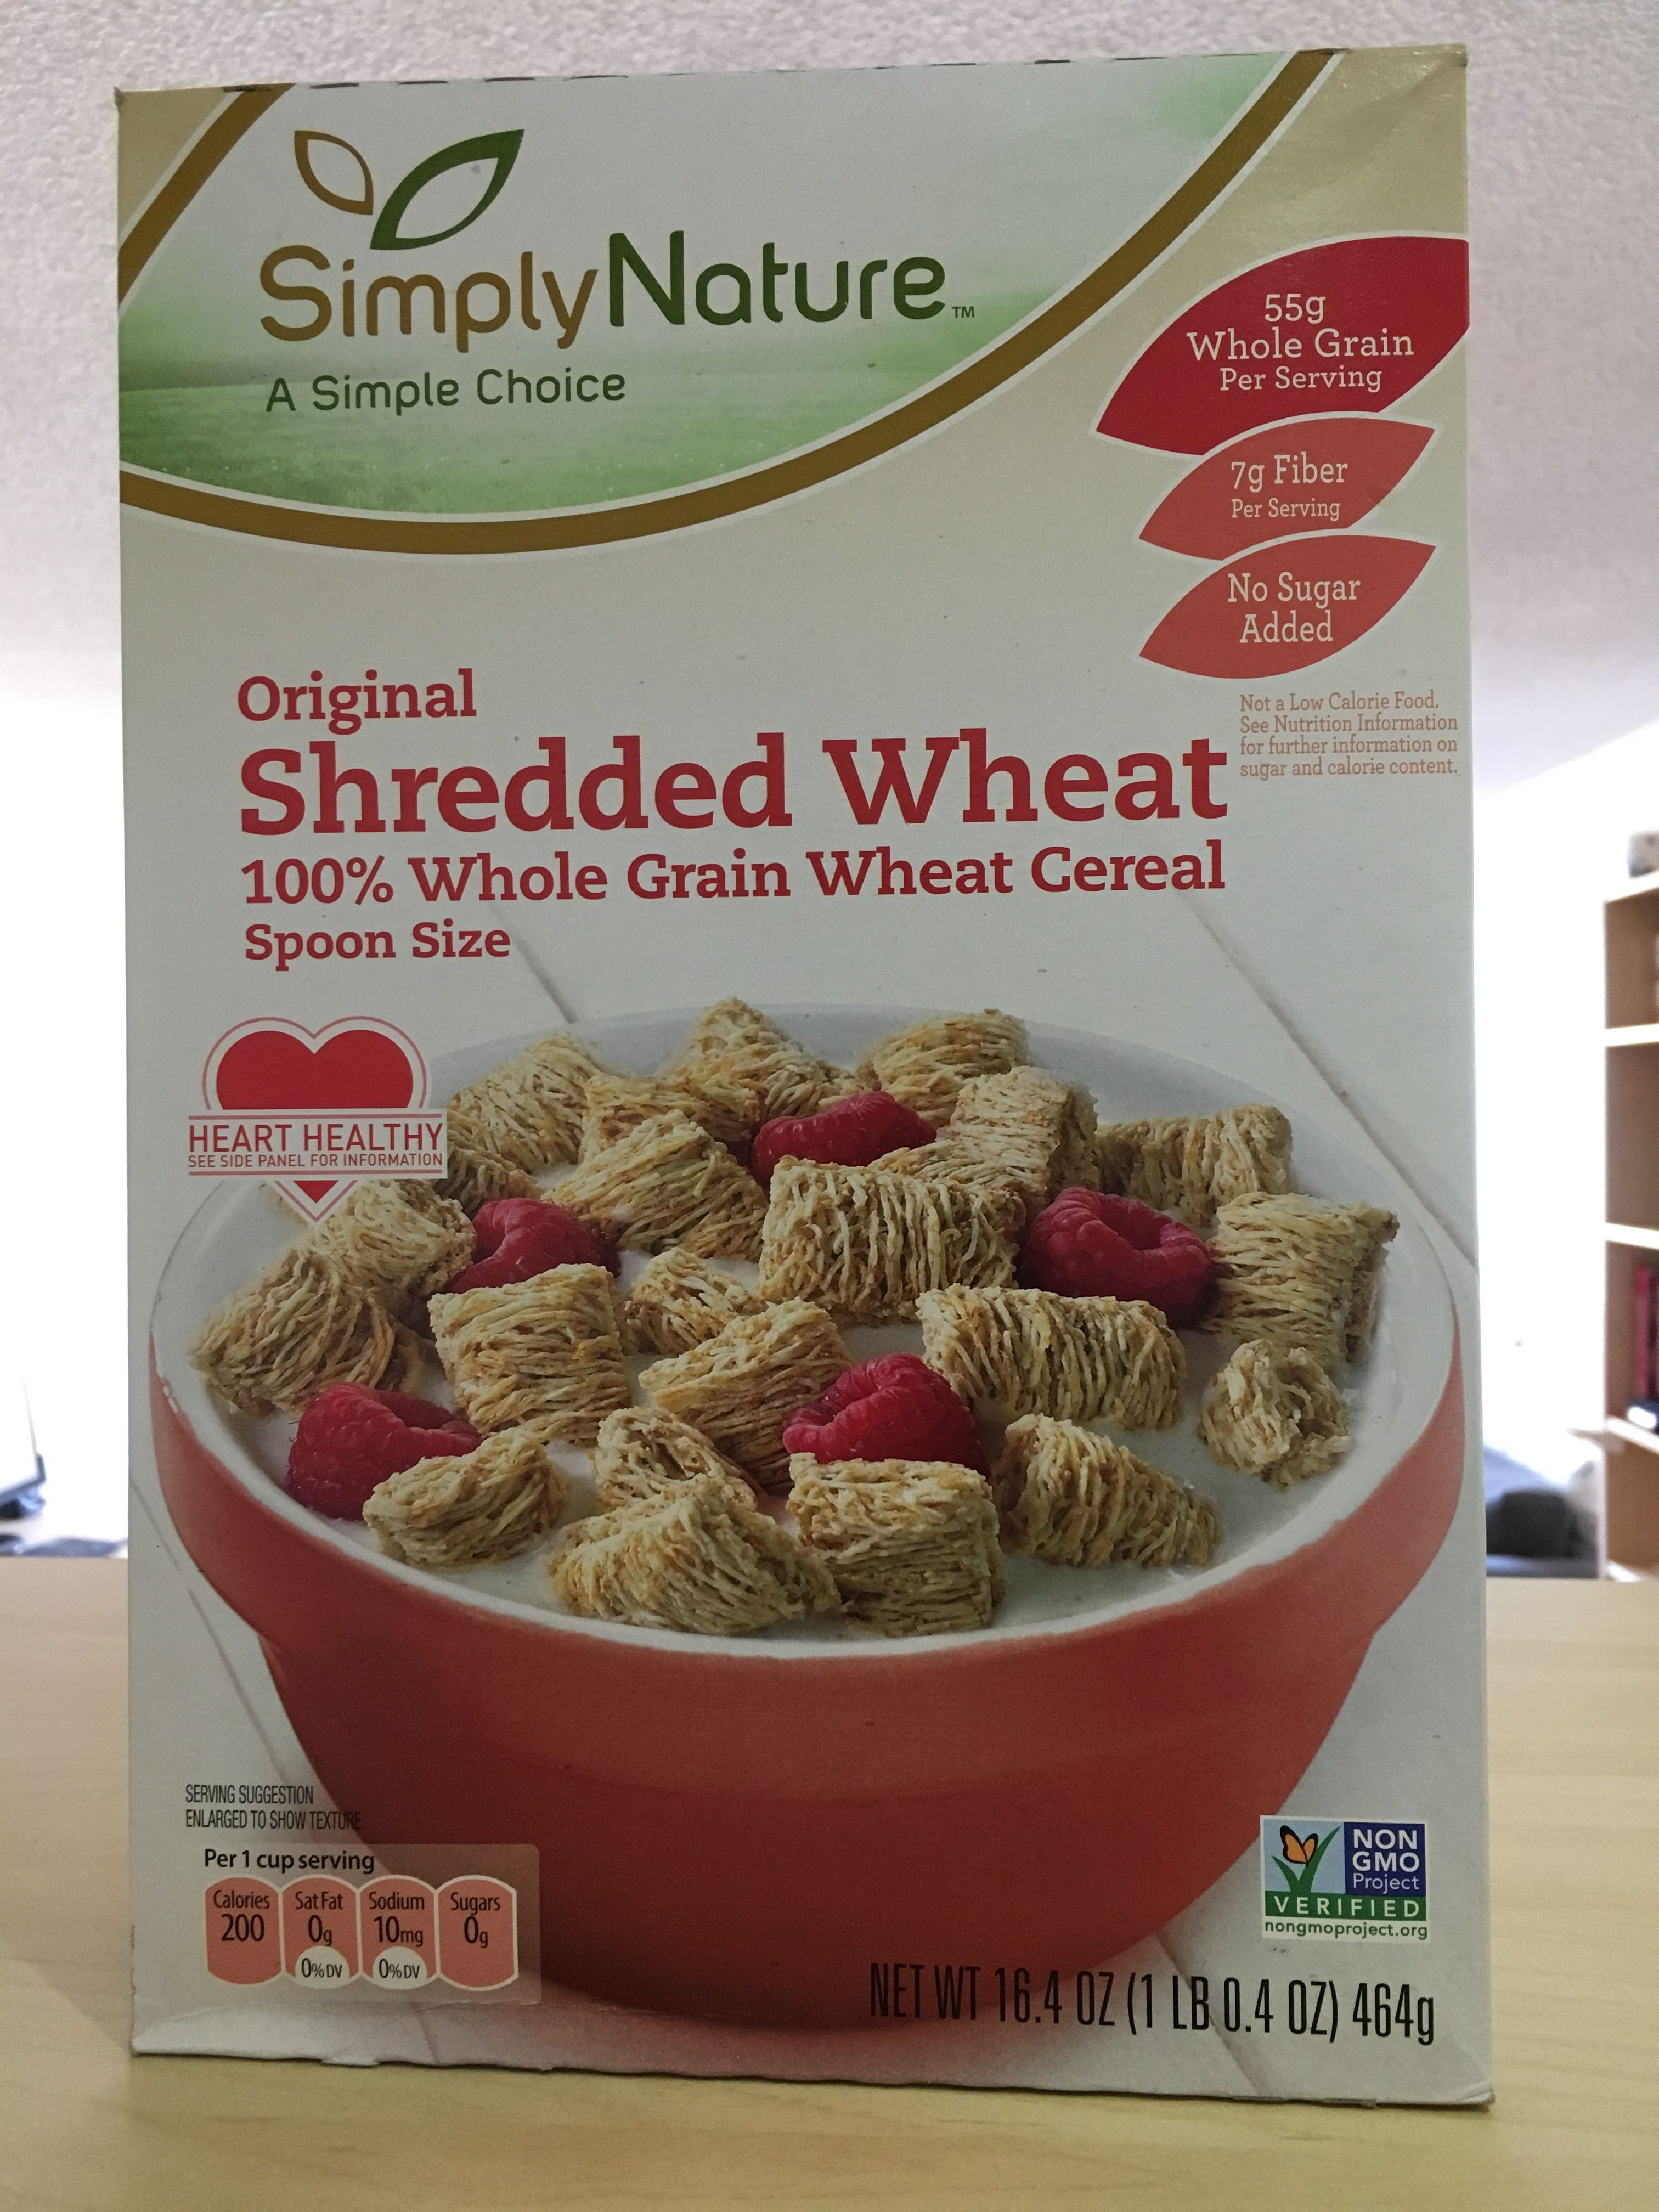 Pin By Scott Mcphee On American Breakfast Cereals Whole Grain Wheat Heart Healthy Wheat Cereal